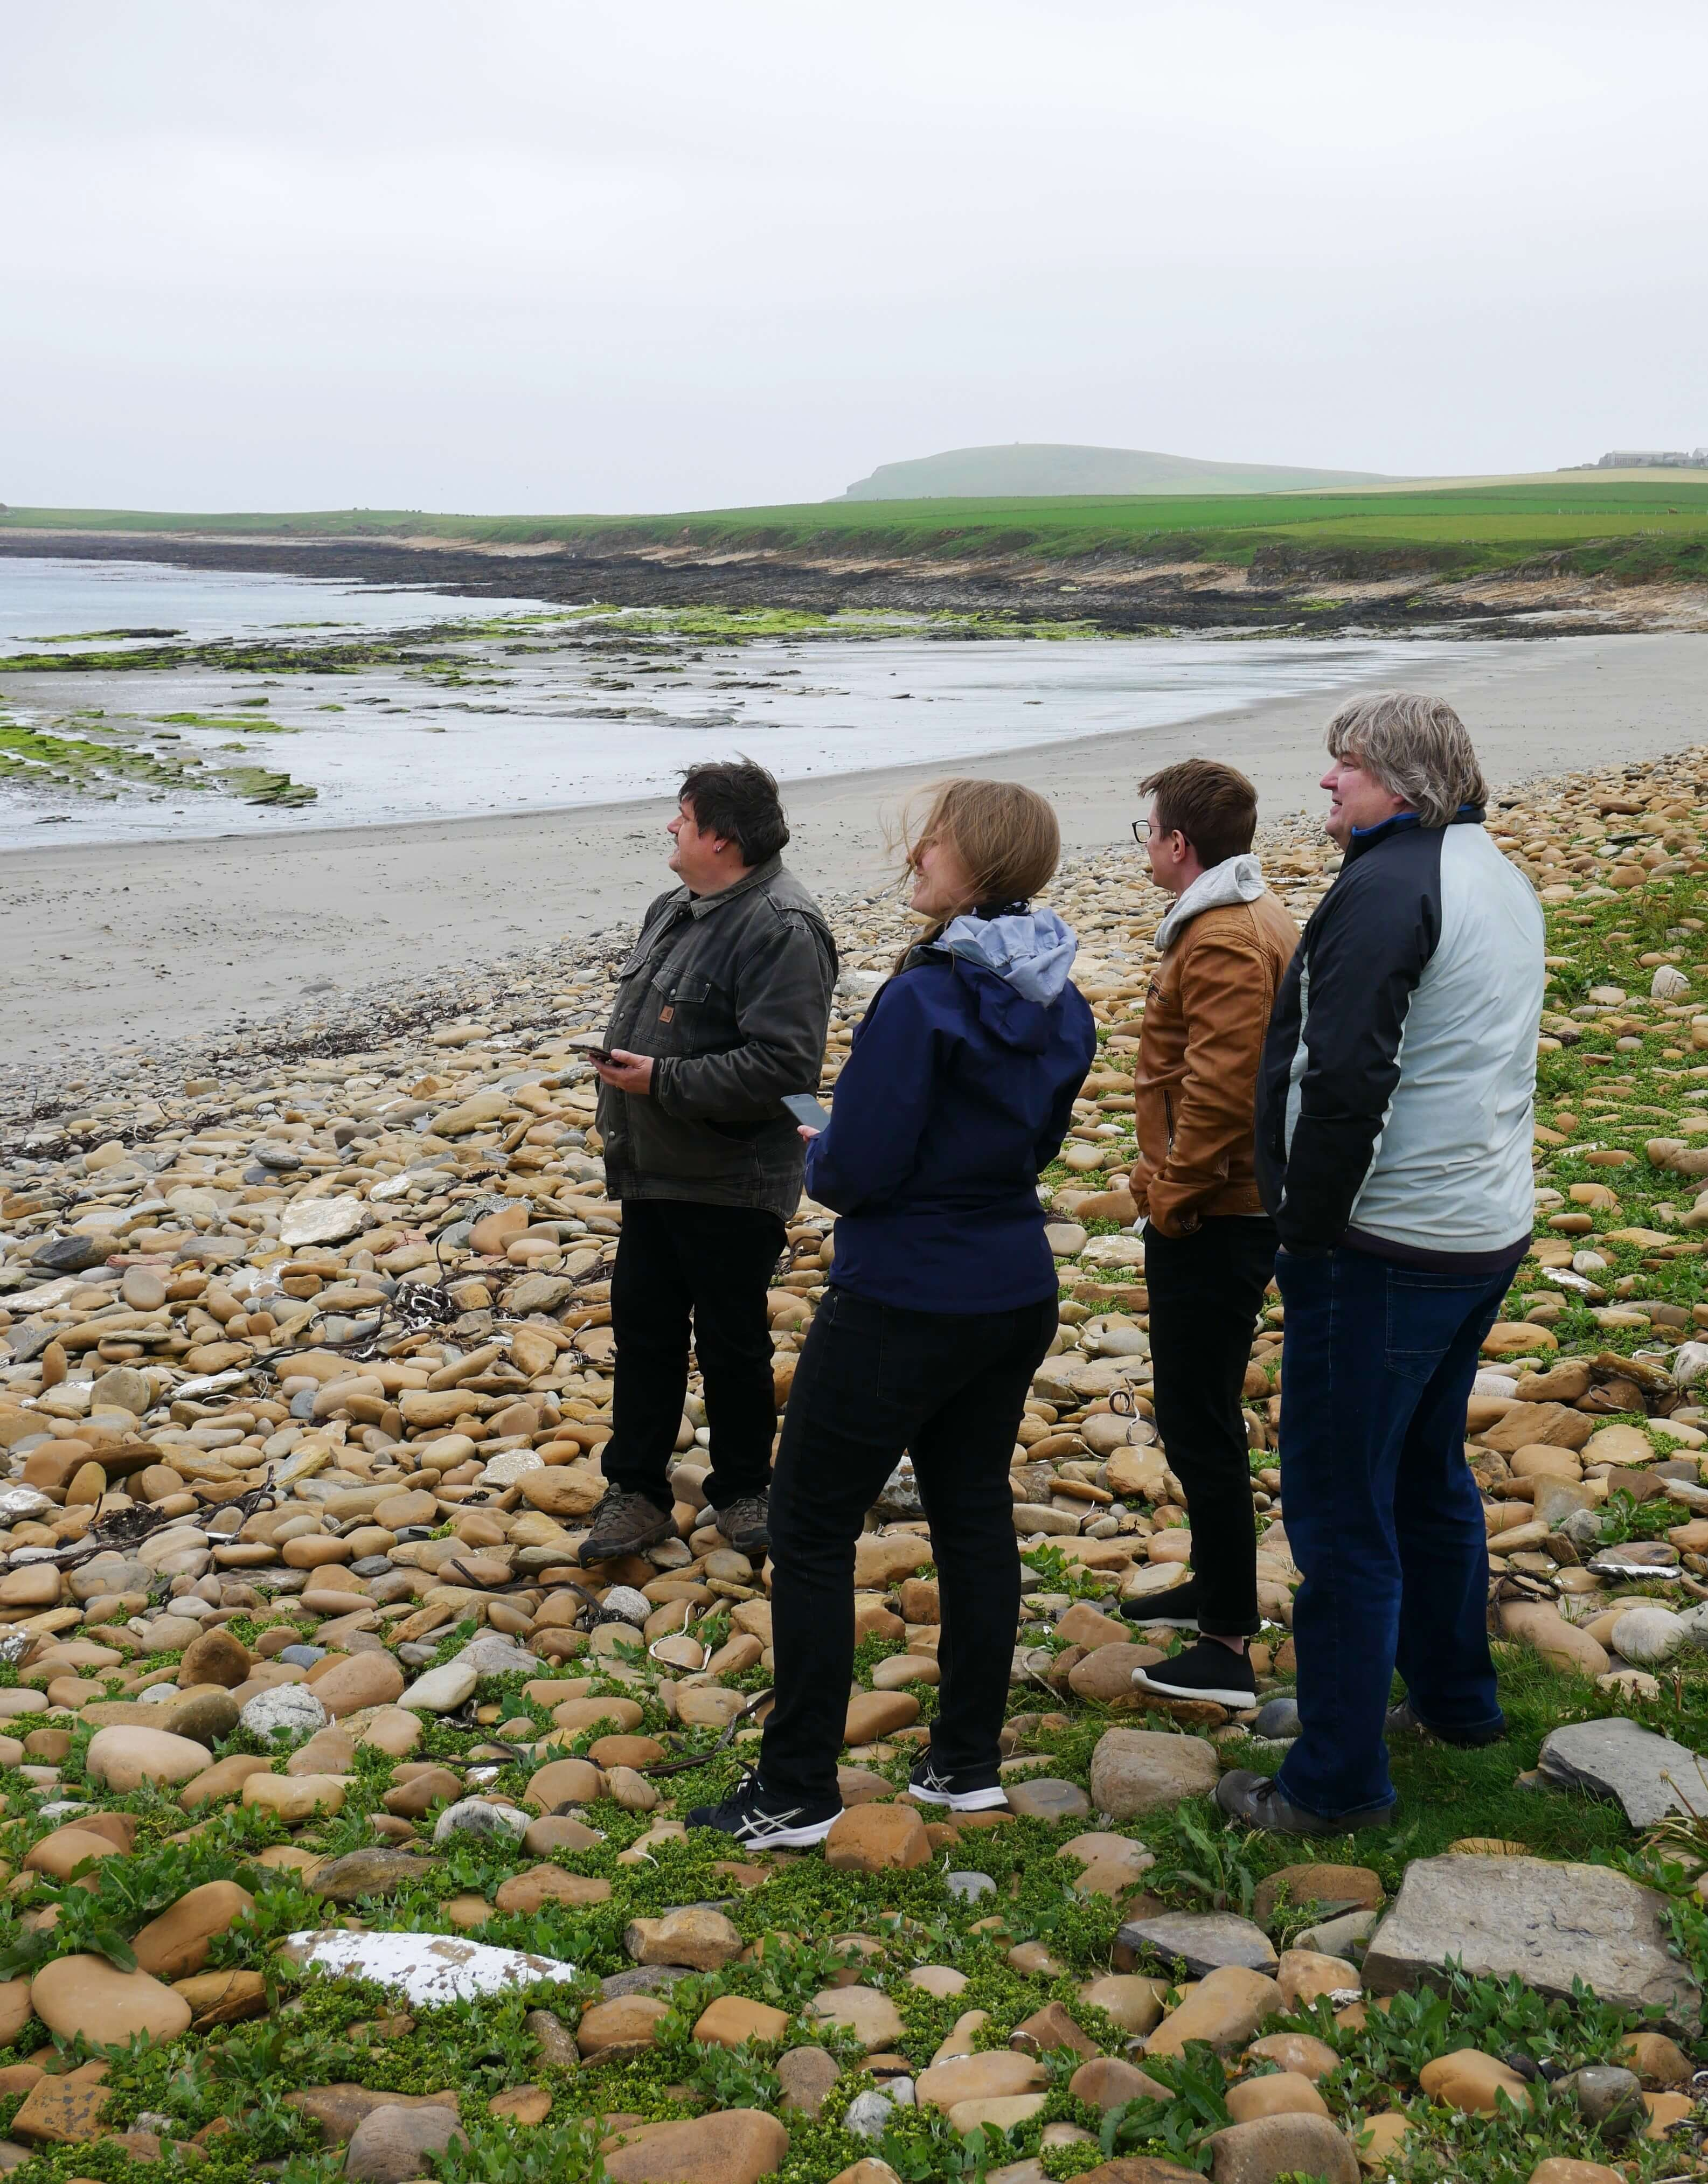 The creators of the free Orkney storytelling Android app of Scotland's Orkney Islands' West Mainland. Discover Orkney through the stories of Orcadian storyteller Tom Muir. Orkneyology.com